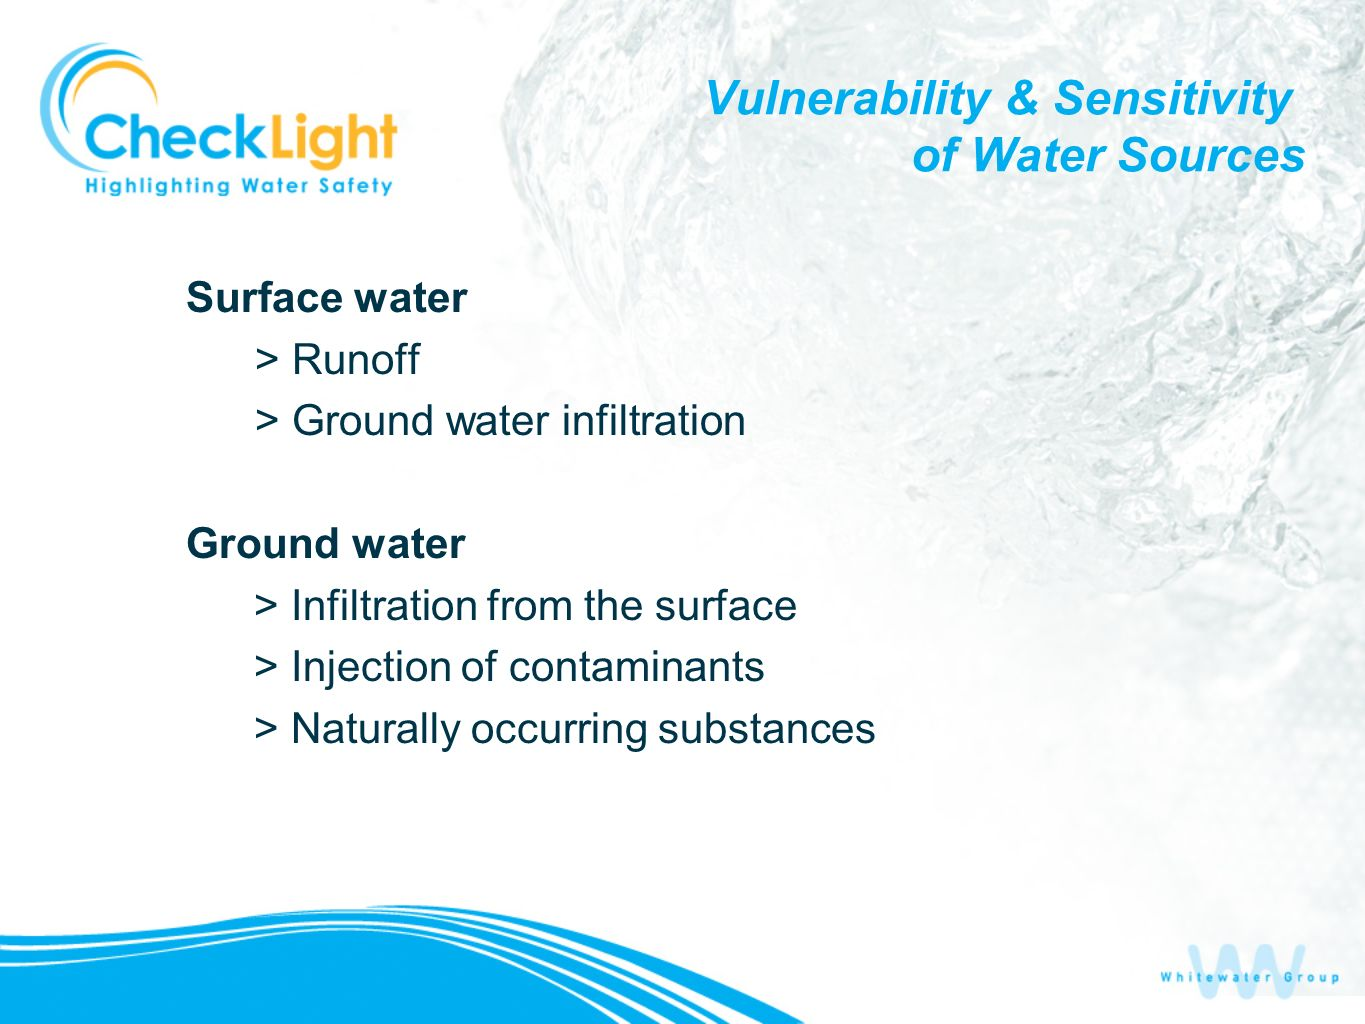 Vulnerability & Sensitivity of Water Sources Surface water > Runoff > Ground water infiltration Ground water > Infiltration from the surface > Injecti